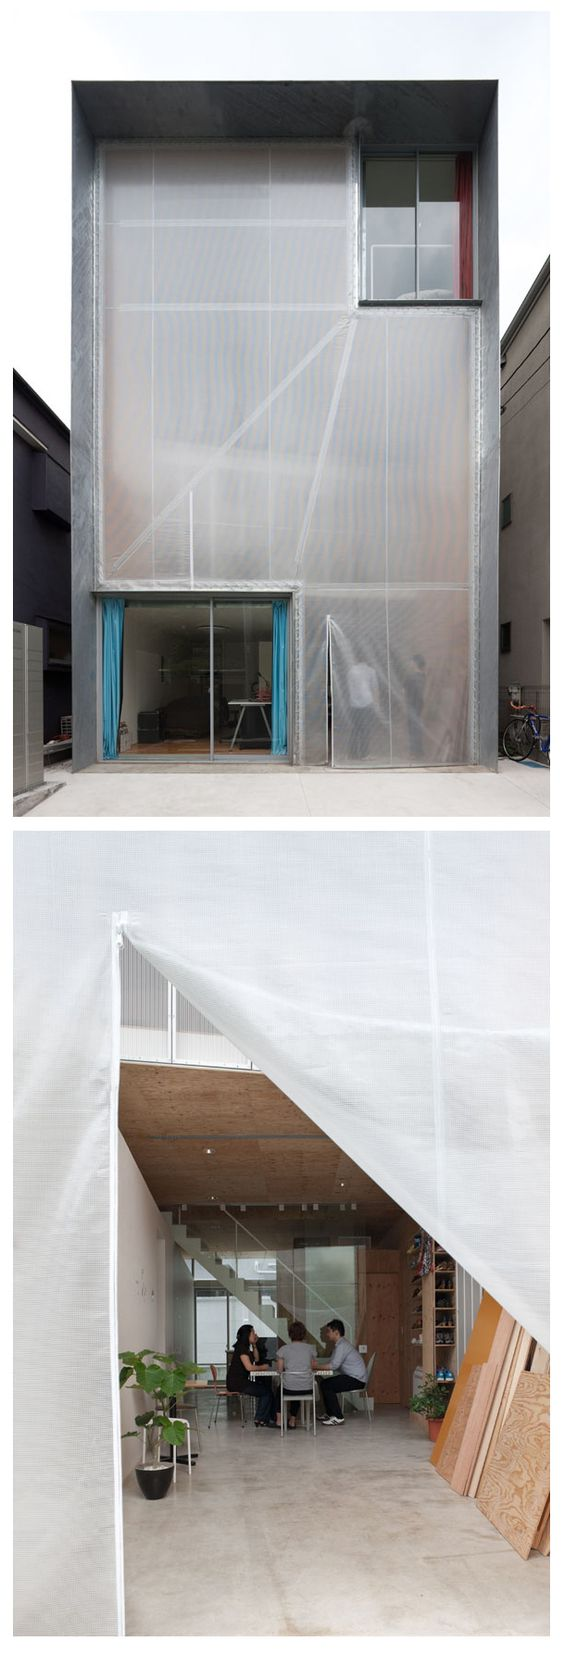 SHAREyaraicho by Satoko Shinohara / Spatial Design Studio + Ayano Uchimura / A studio. The facade of the building is only covered by a translucent plastic sheet. When the fabric is unzipped, passersby may peak in on the residents making furniture for their rooms or enjoying a cup of tea together.